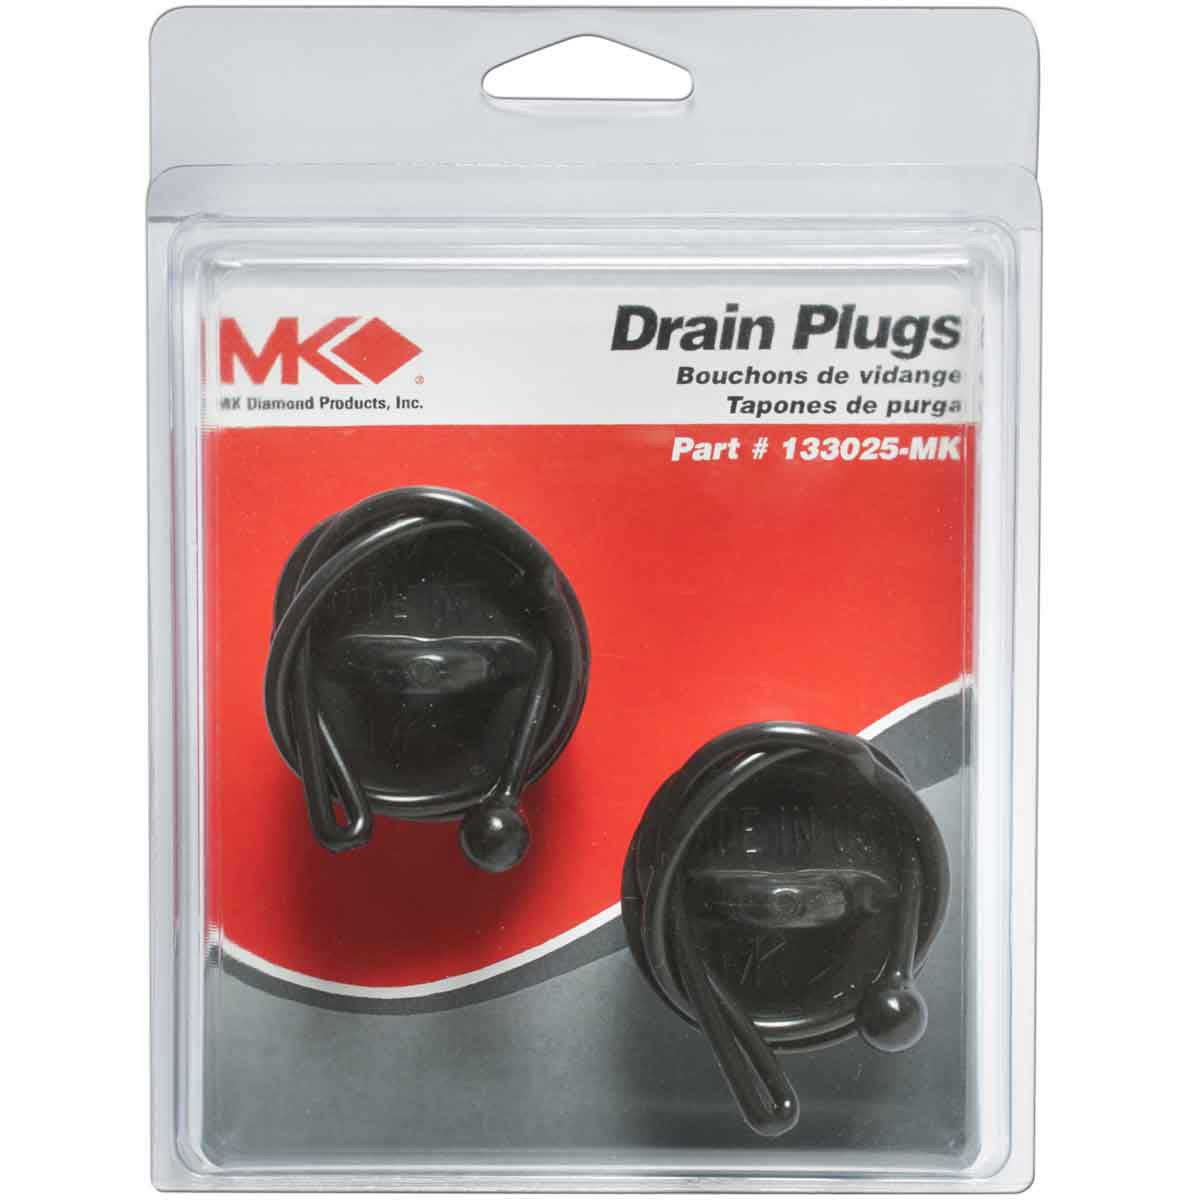 MK Drain Plugs For Tile Saw Water Trays